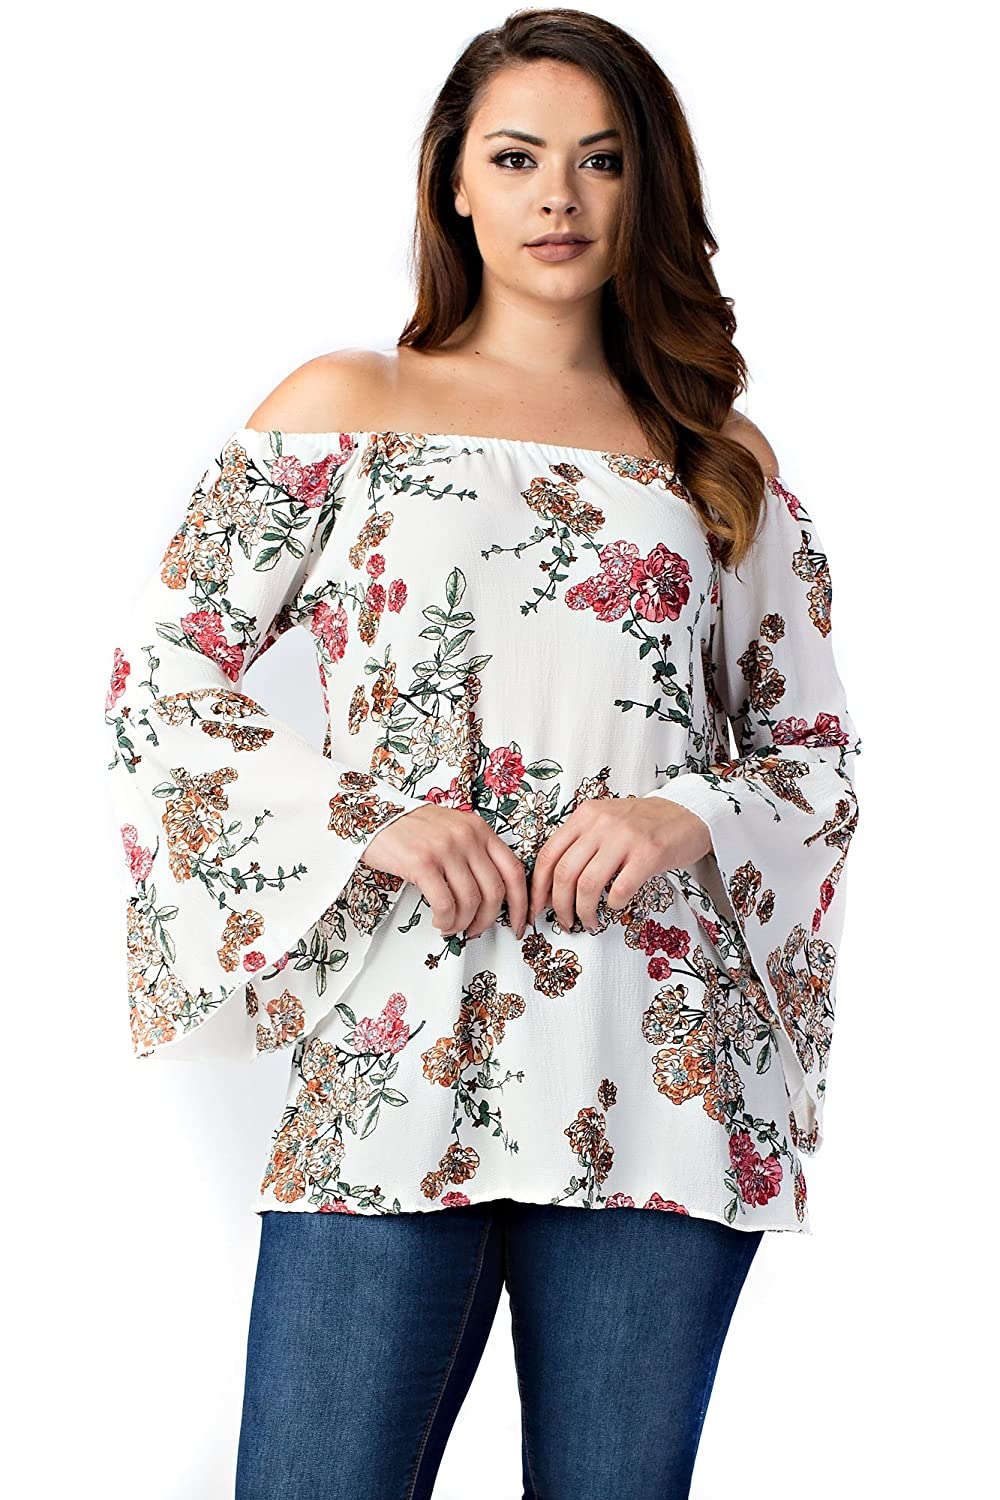 06064a92fa5 Betsy Red Couture Women's Plus Size Bell Sleeves Loose Fit Tunic Top at  Amazon Women's Clothing store: